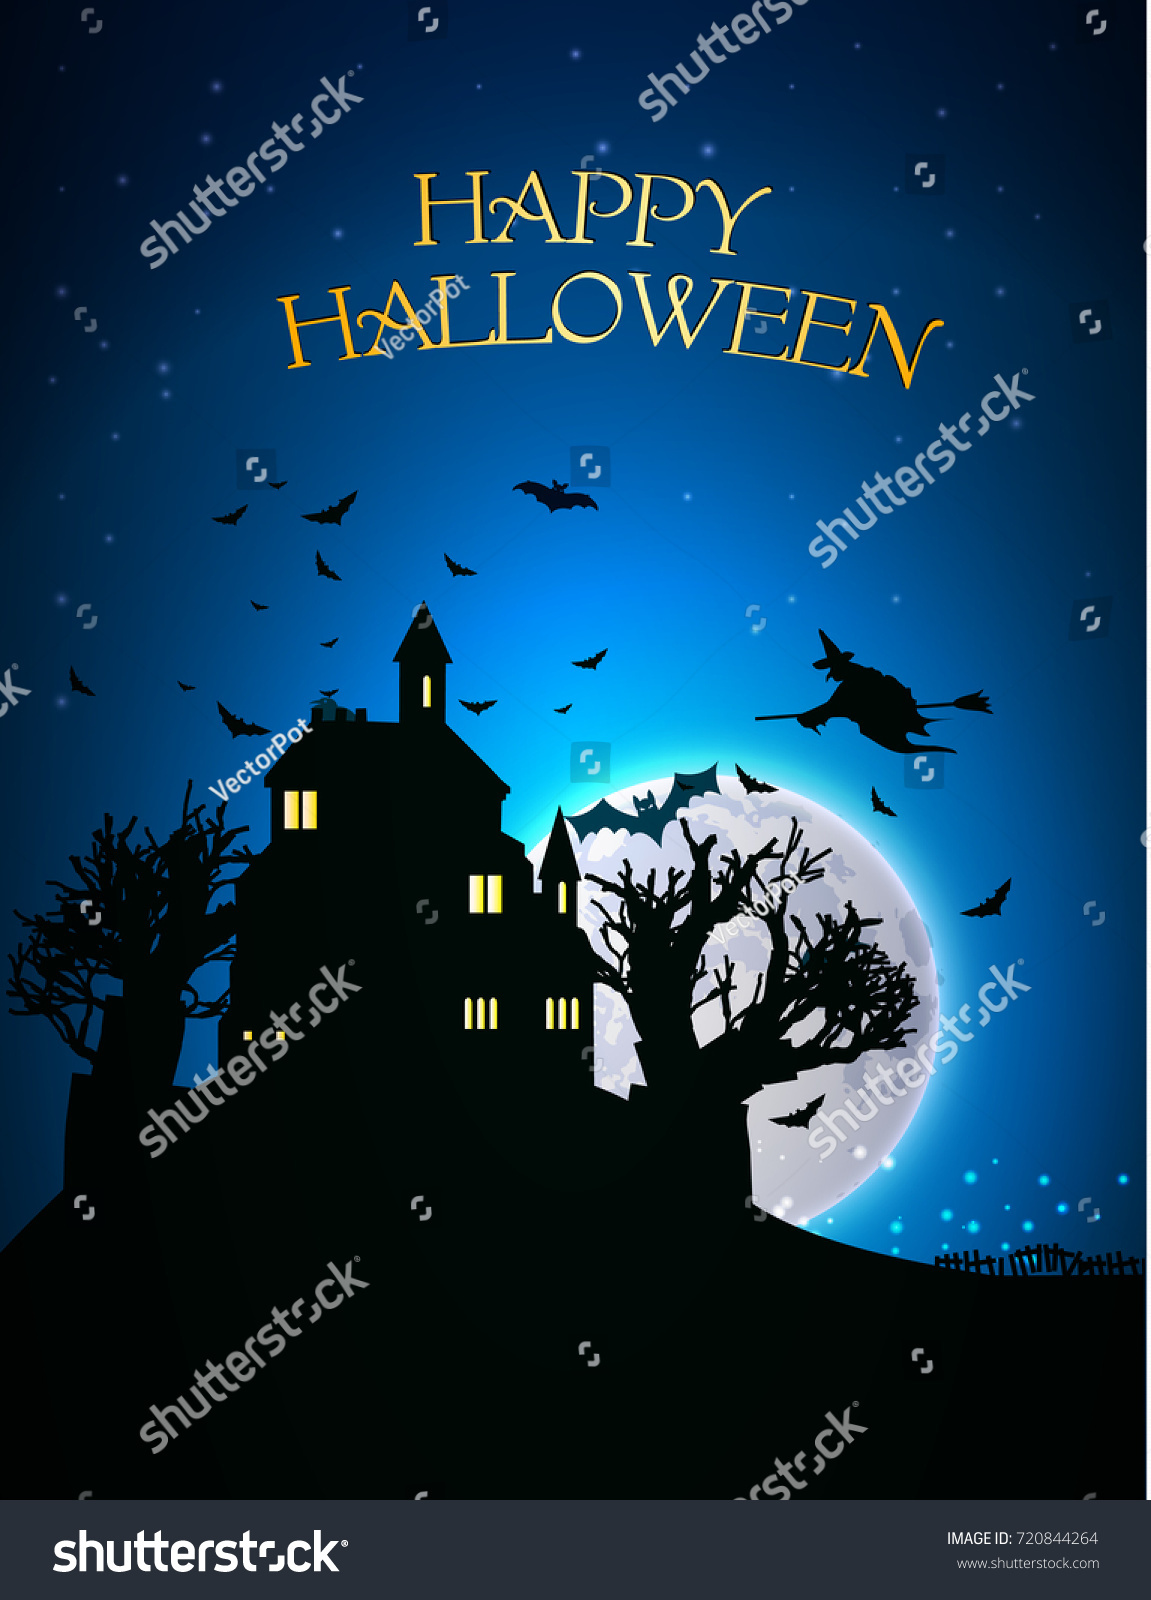 Happy Halloween Template With Scary House Trees Bats Flying Witch  Silhouettes On Blue Moon Background Vector